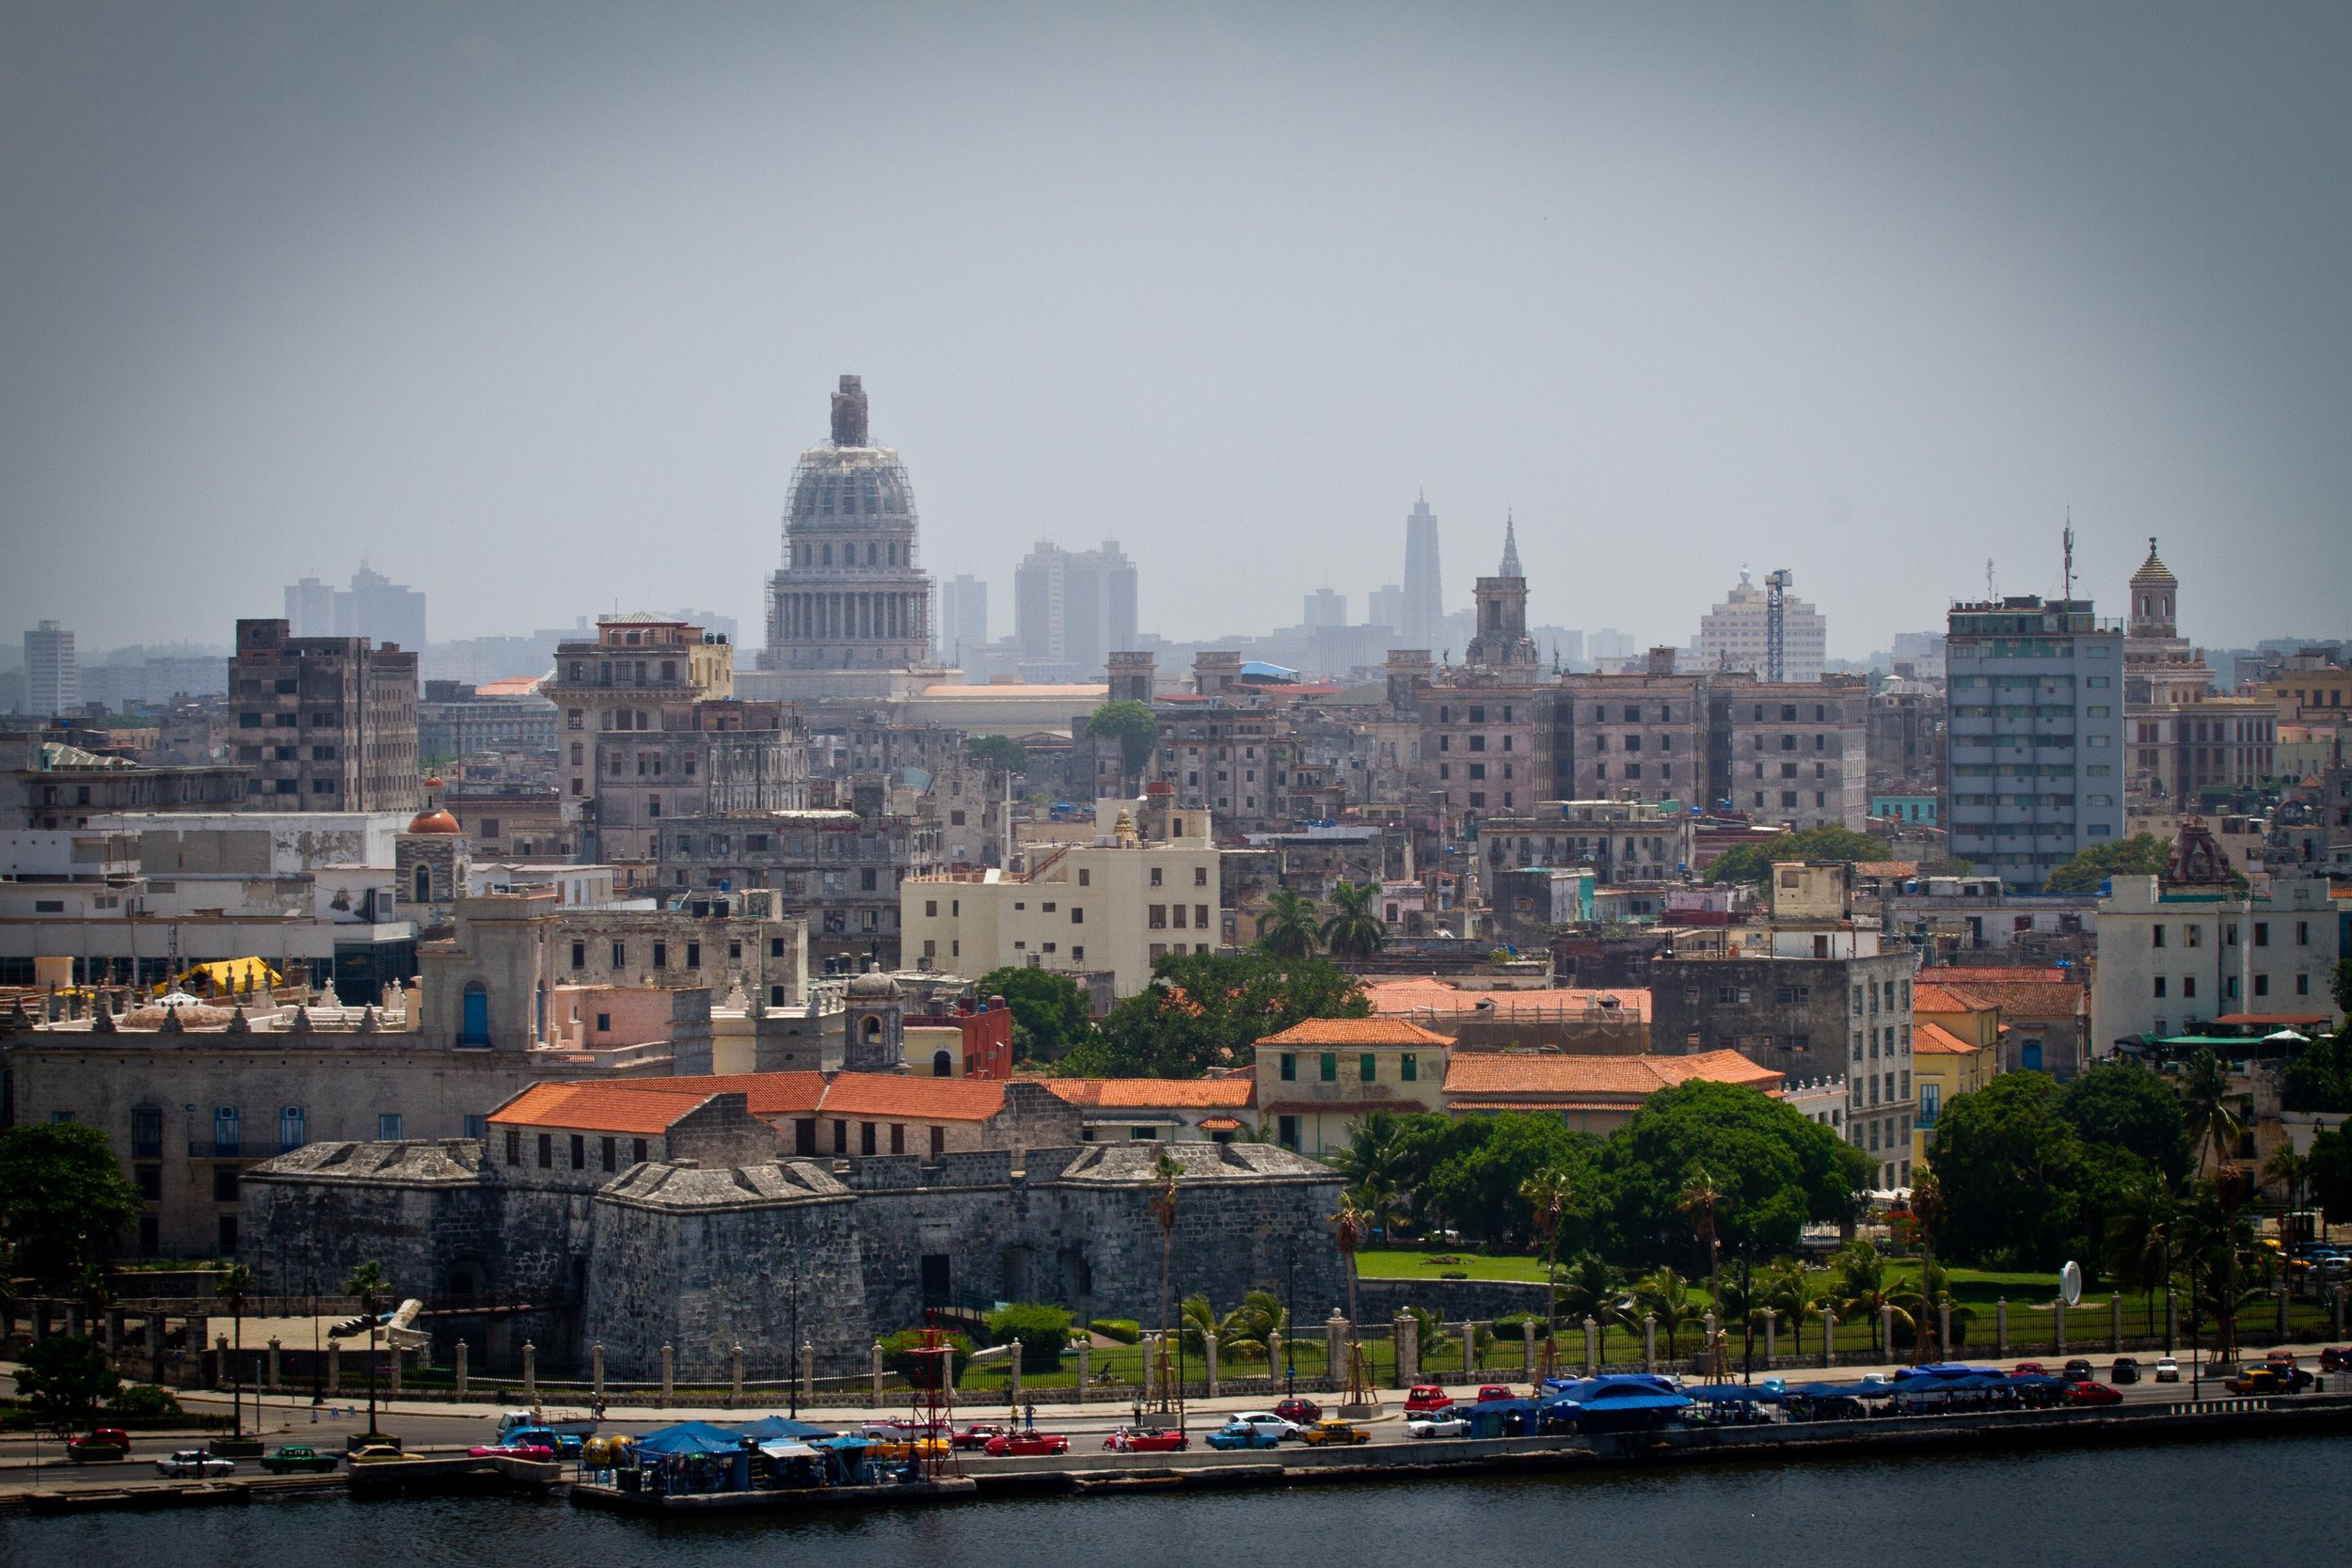 Old Havana in all its glory